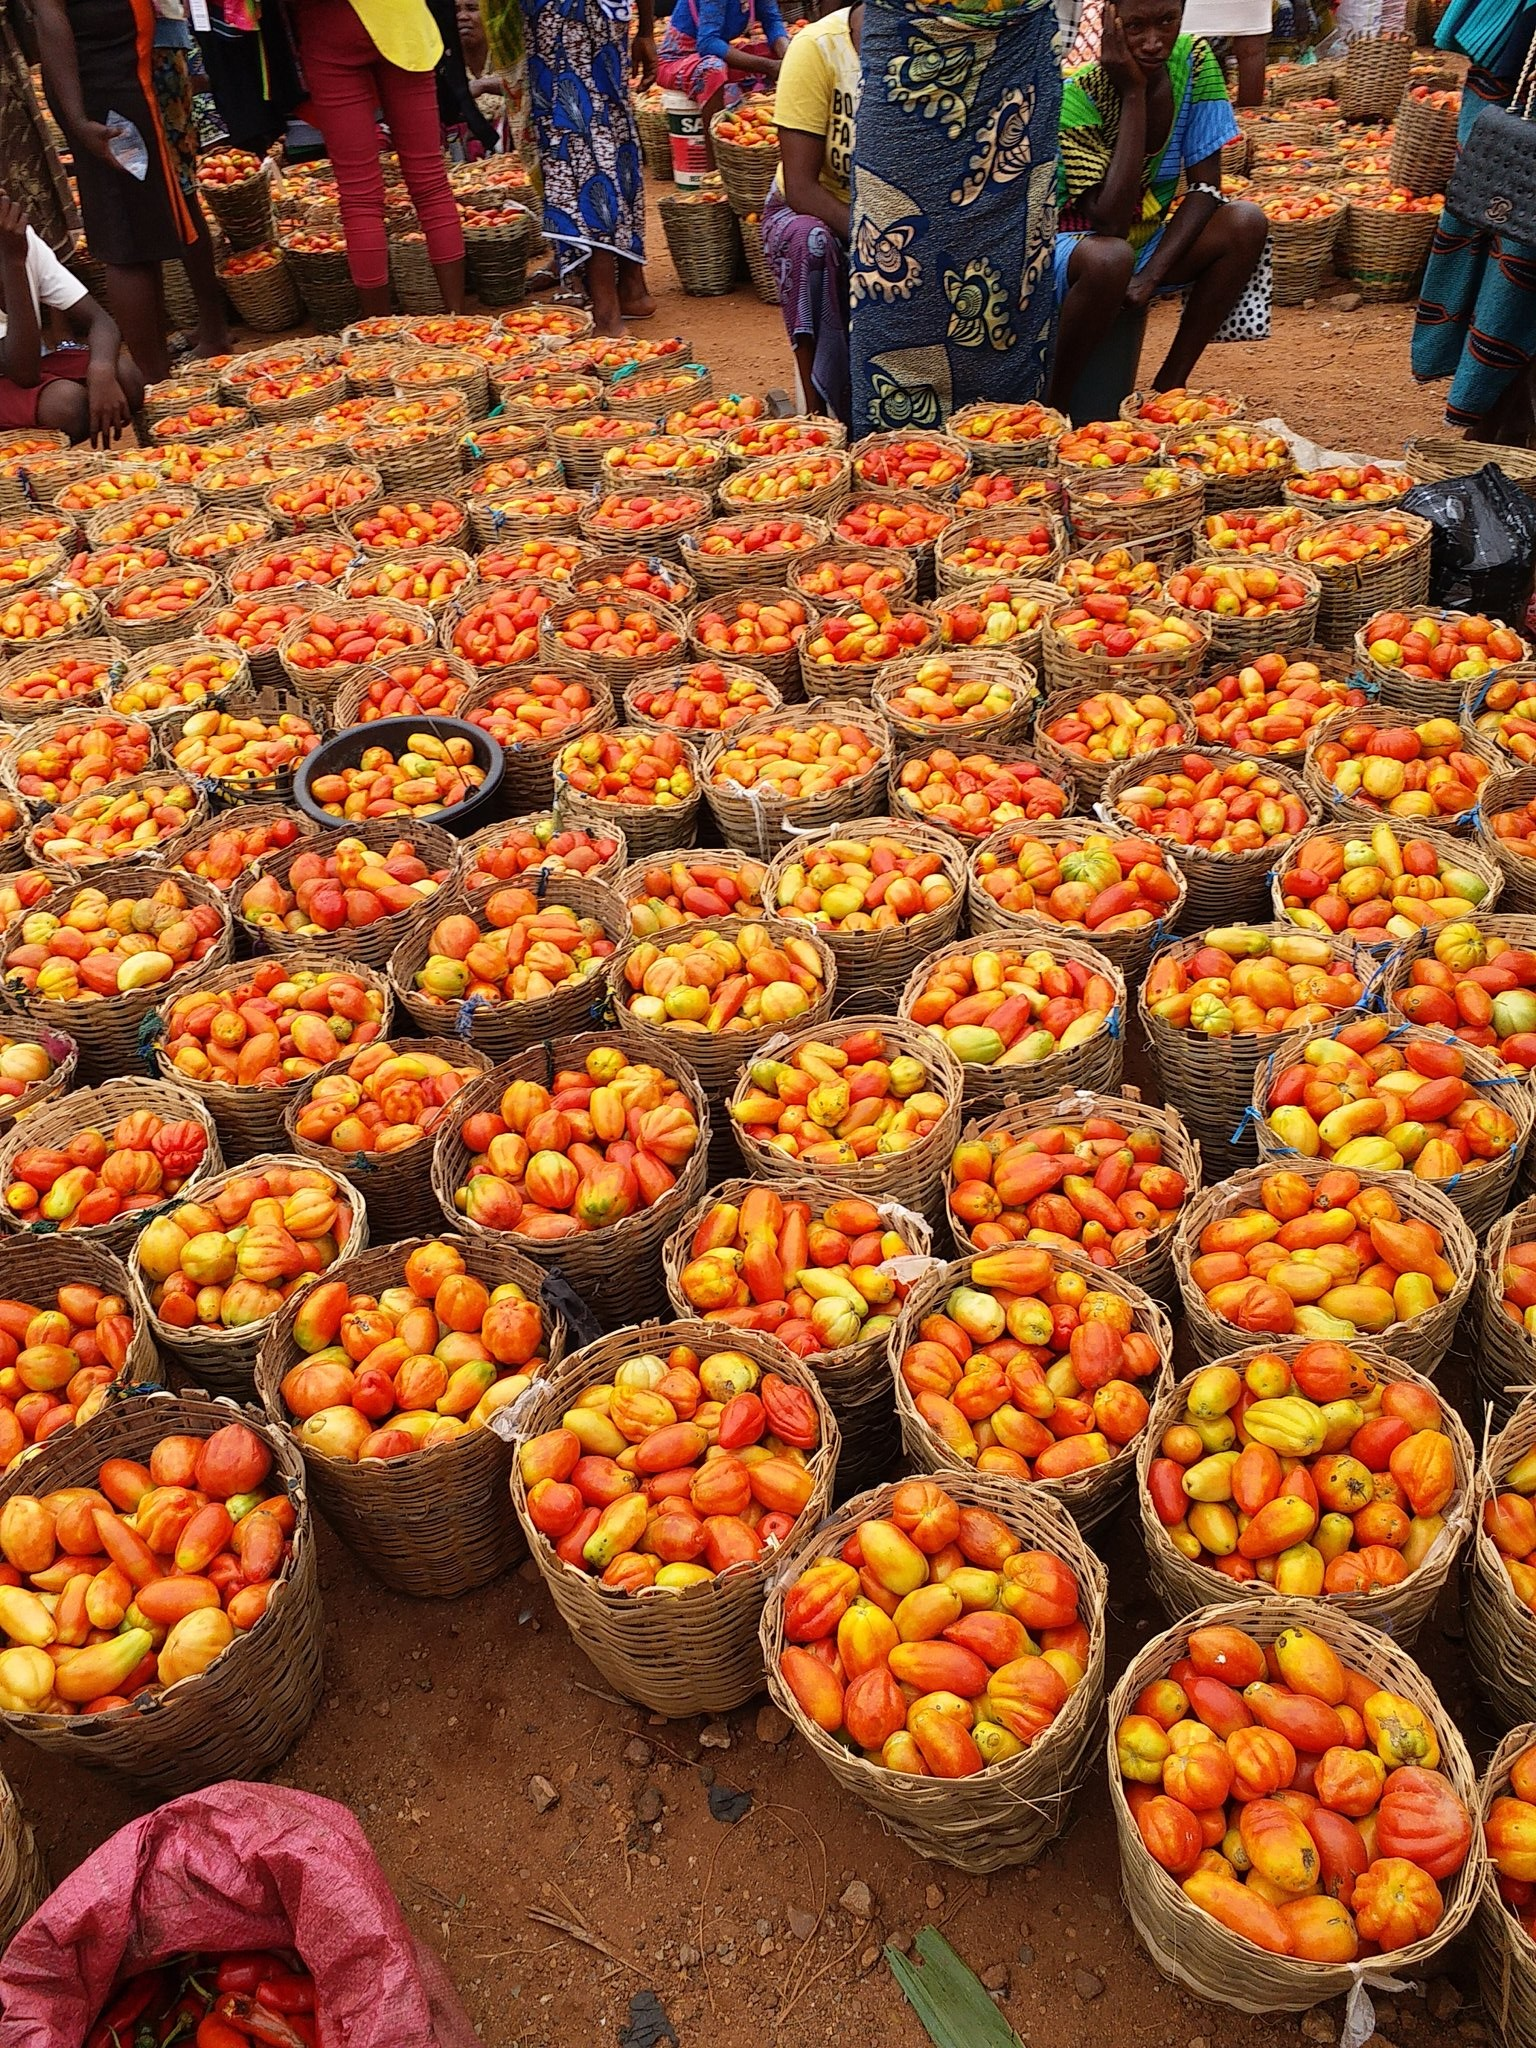 There's A Town In Benue State Where A Whole Basket Of Tomatoes Go For N150